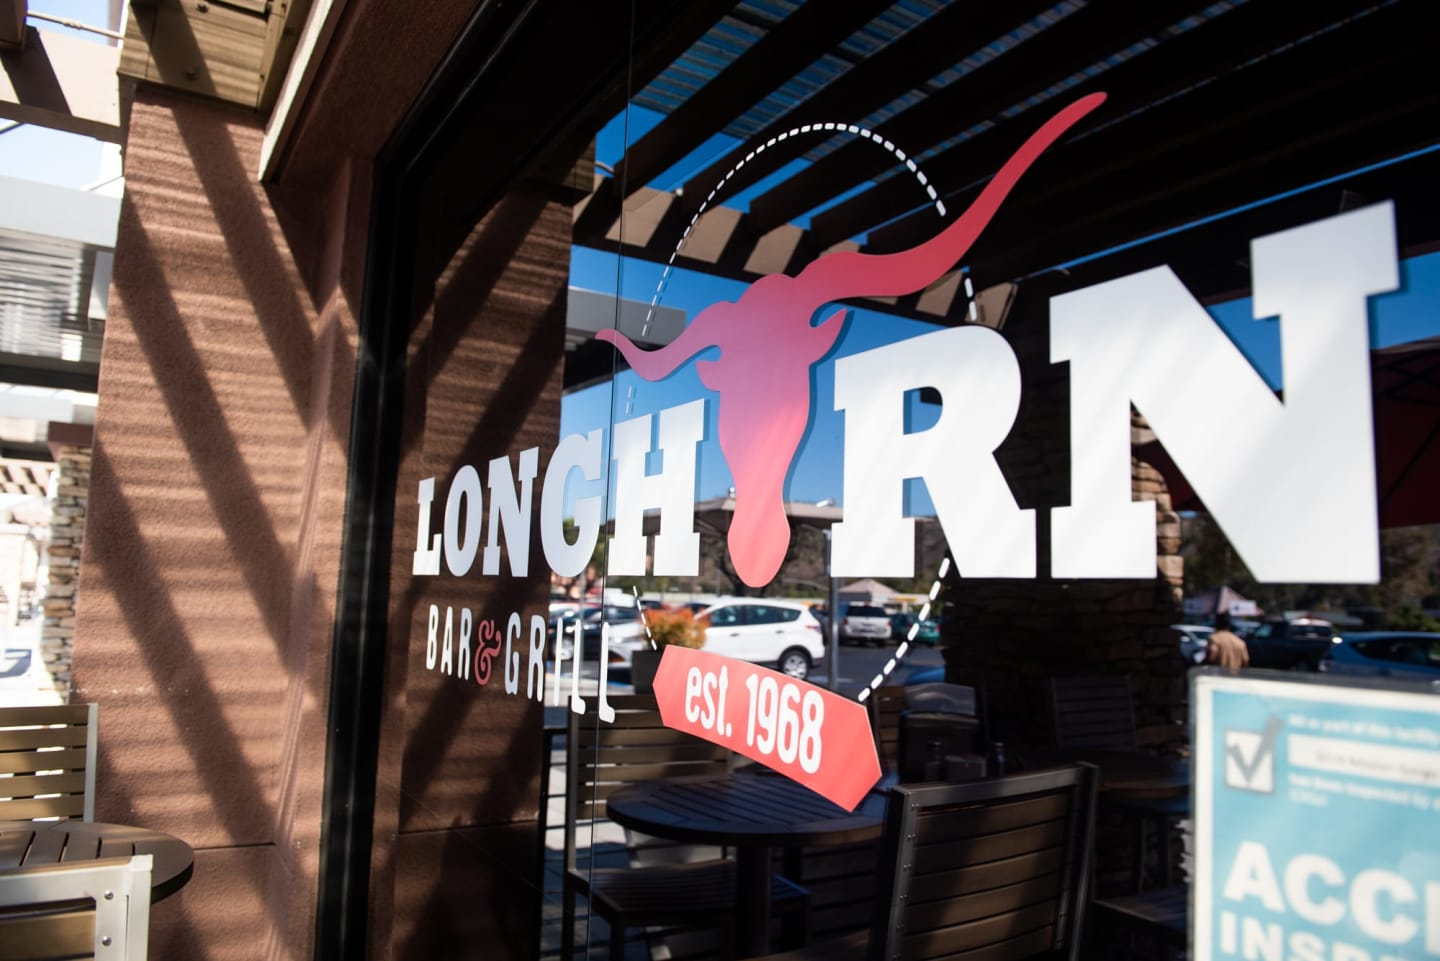 long horn bar & grill logo